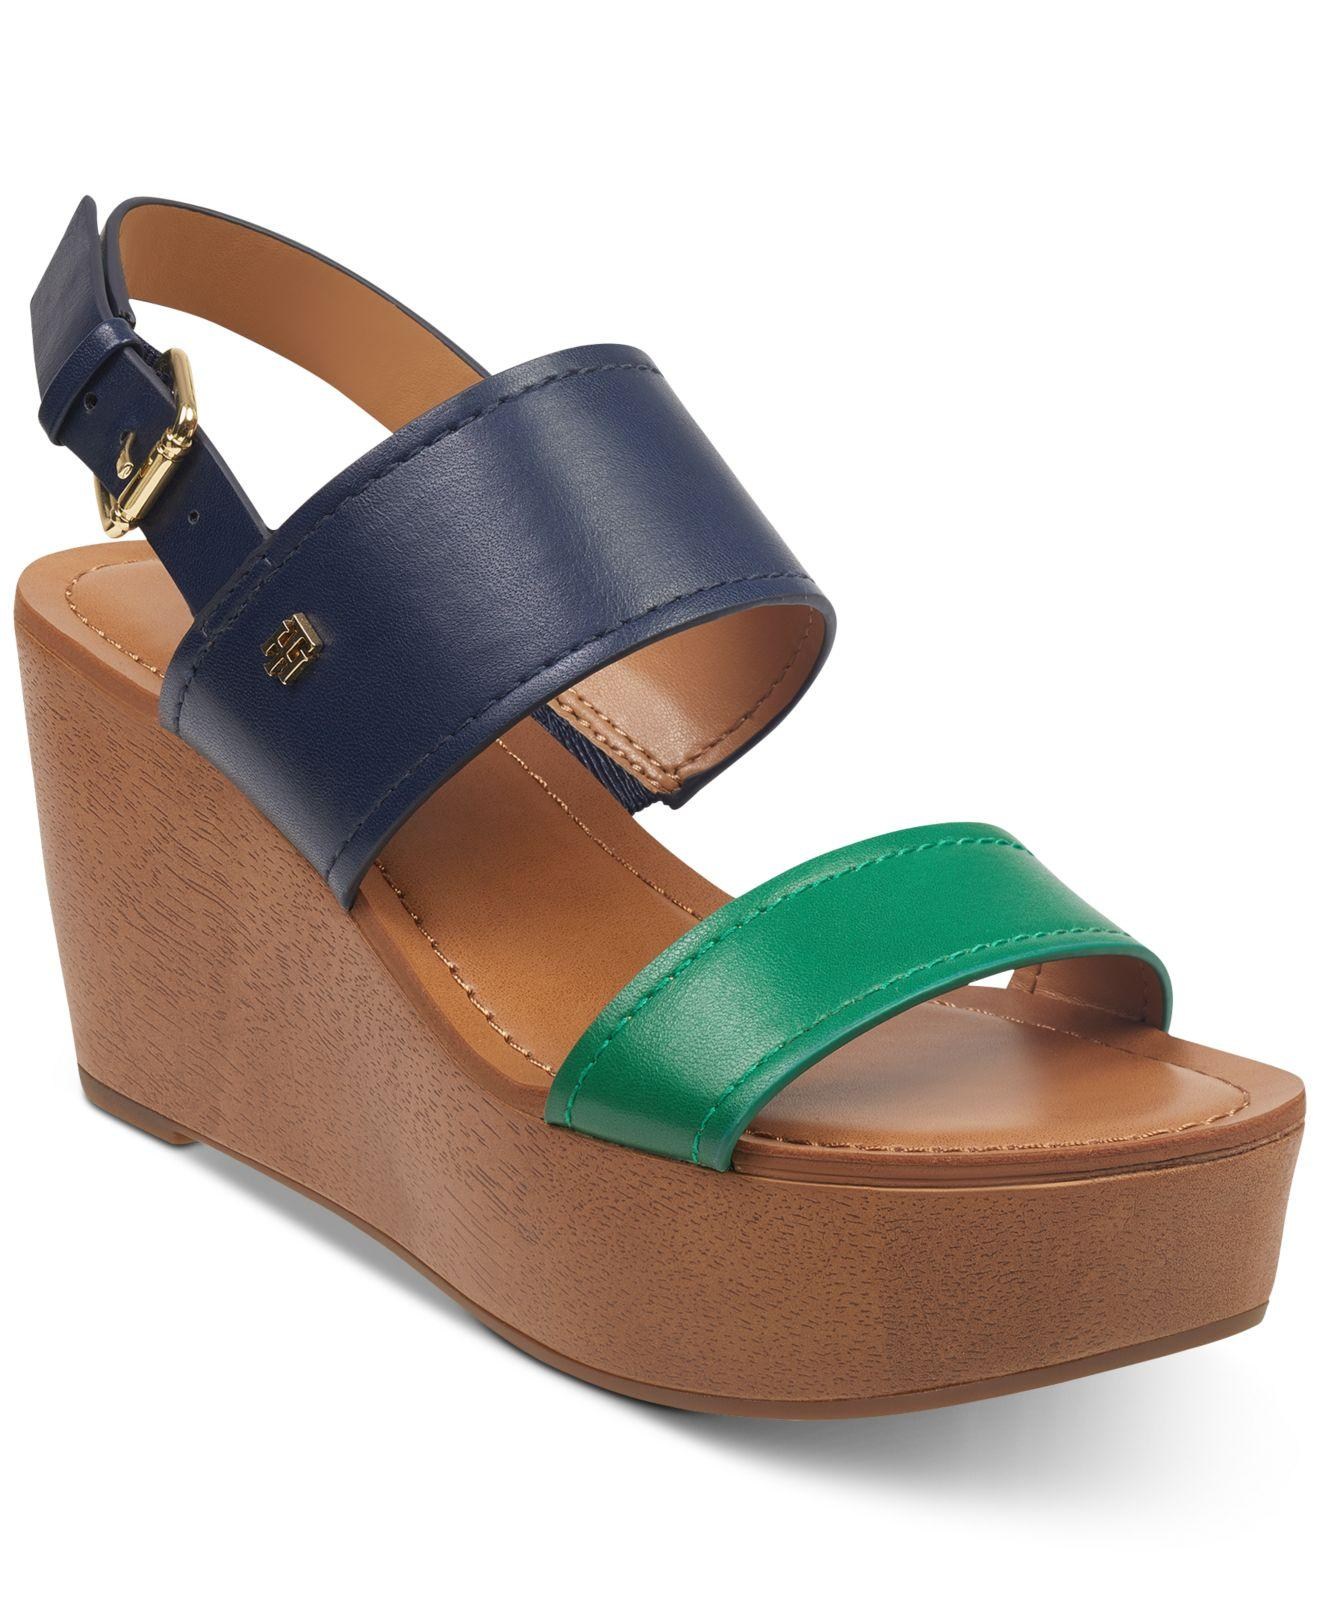 06dad9c2062 Lyst - Tommy Hilfiger Wilder Wedges in Blue